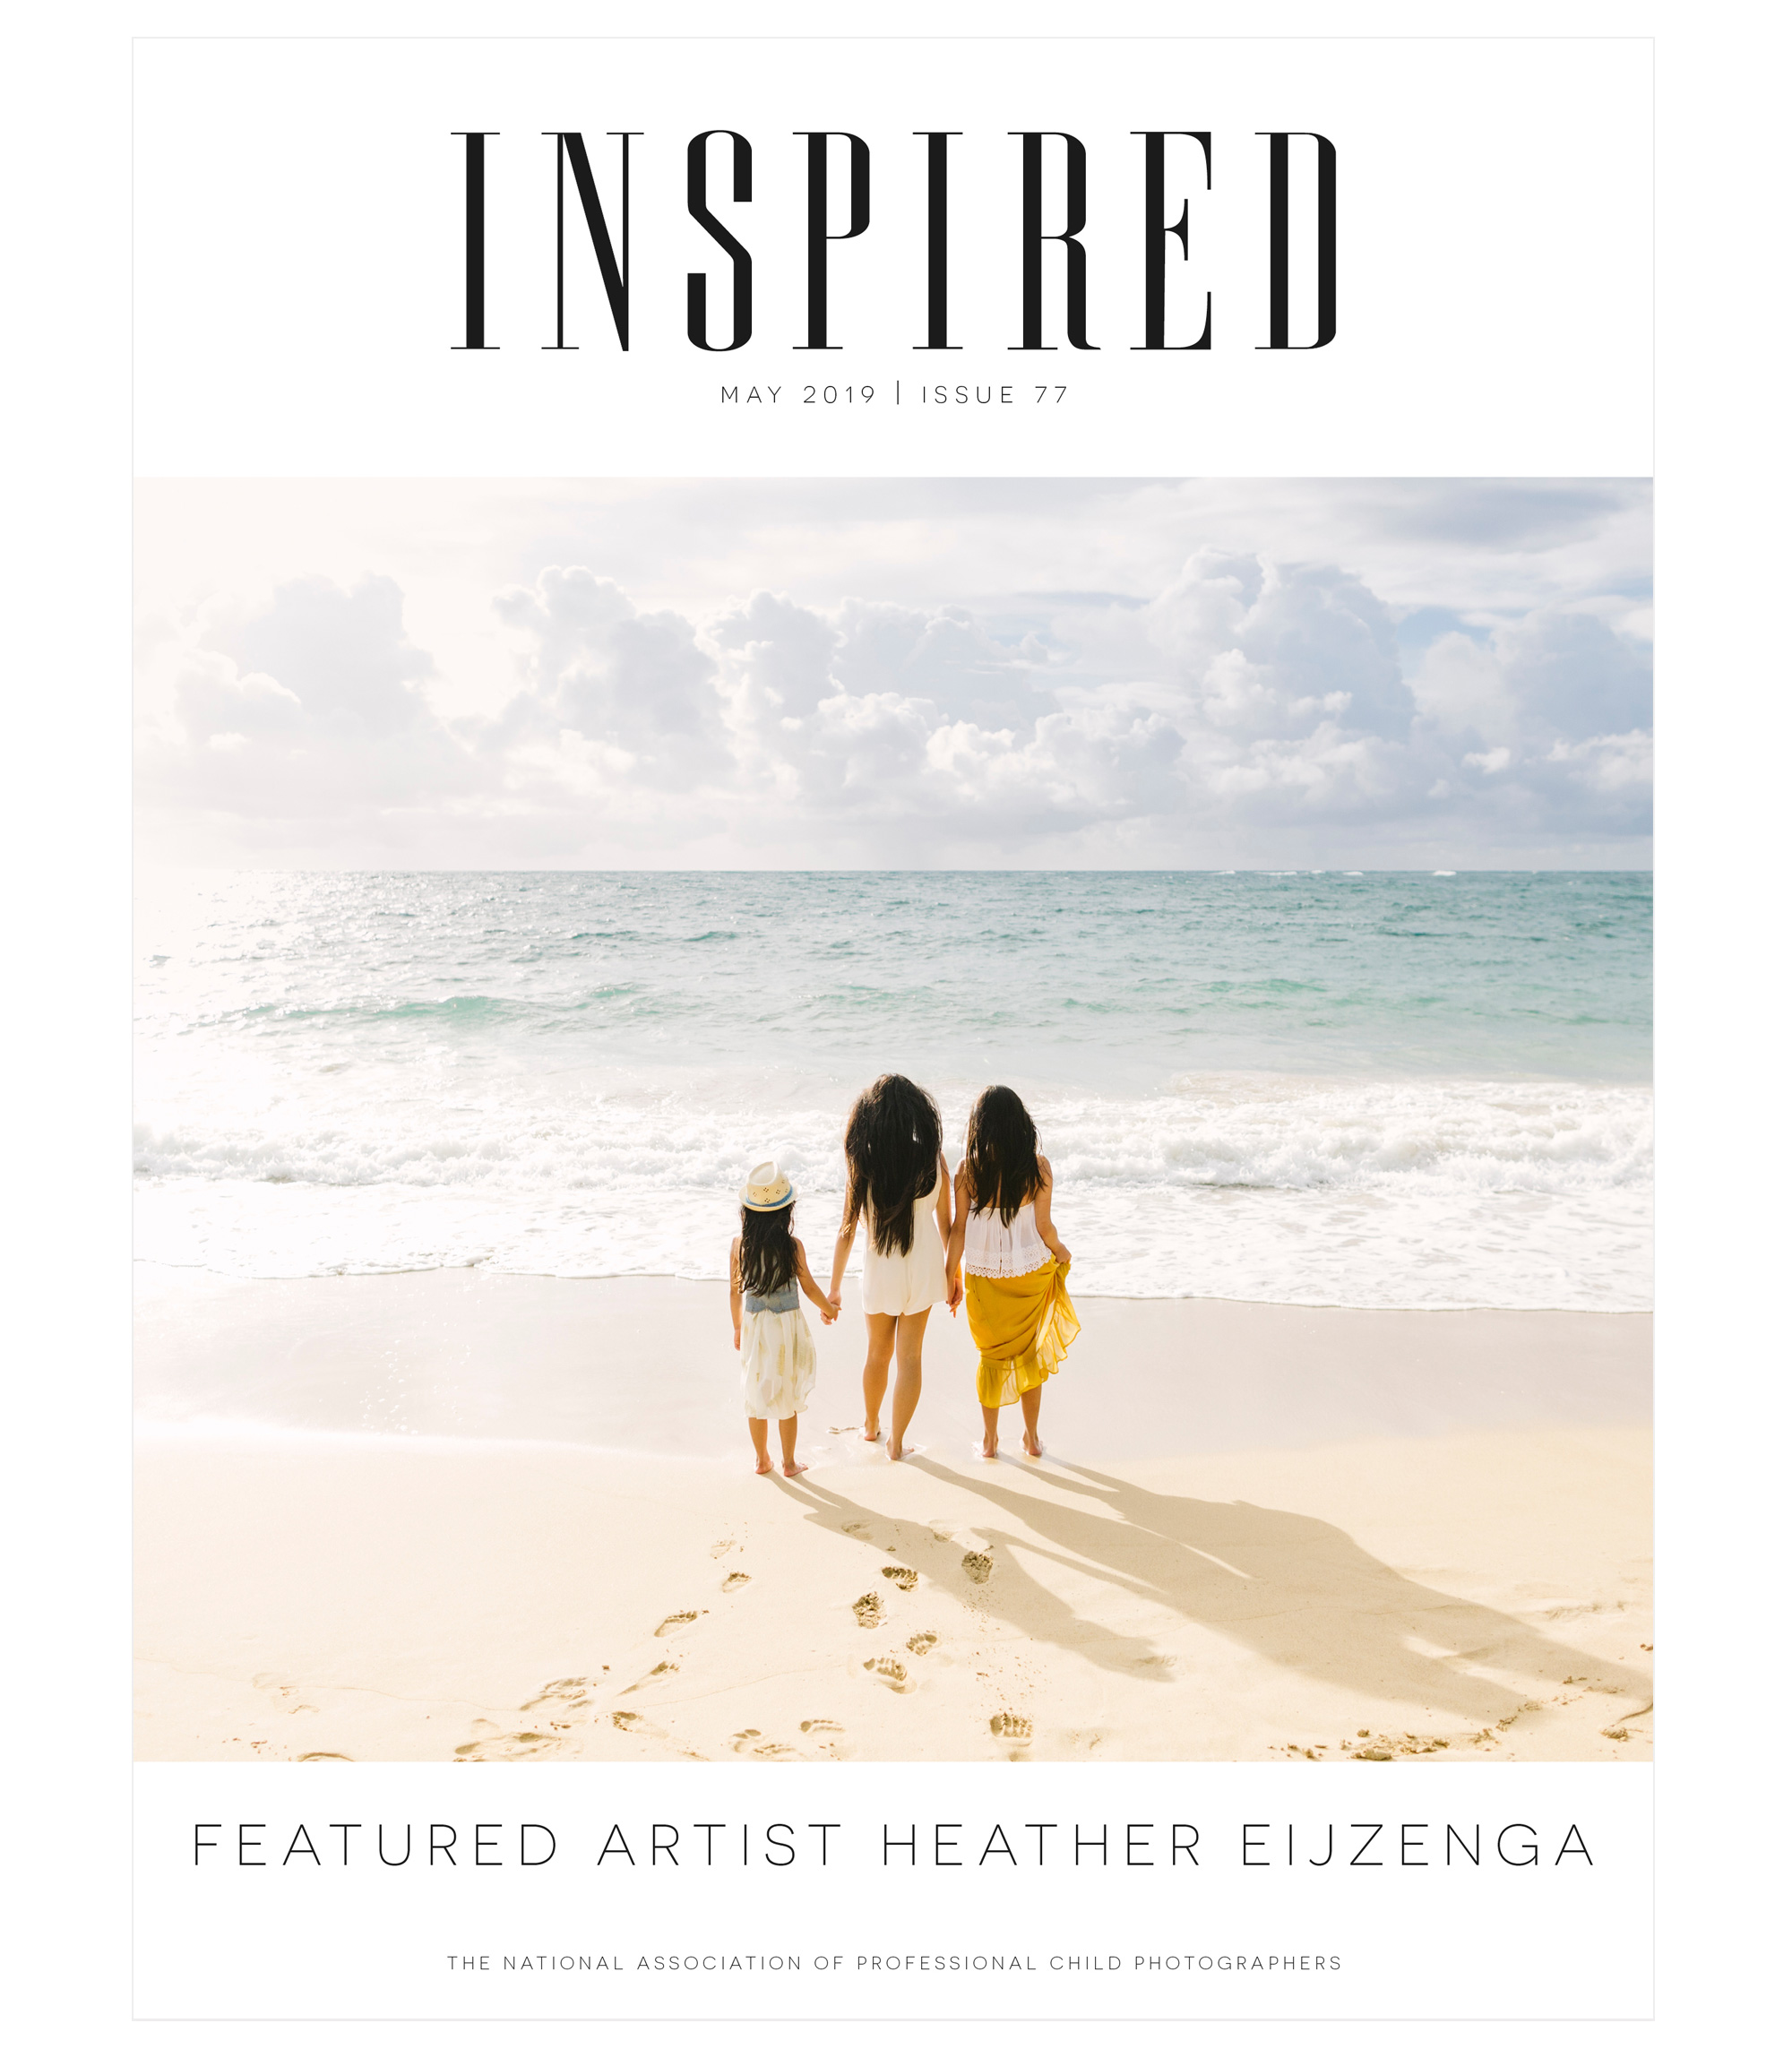 Inspired magazine May 2019 cover